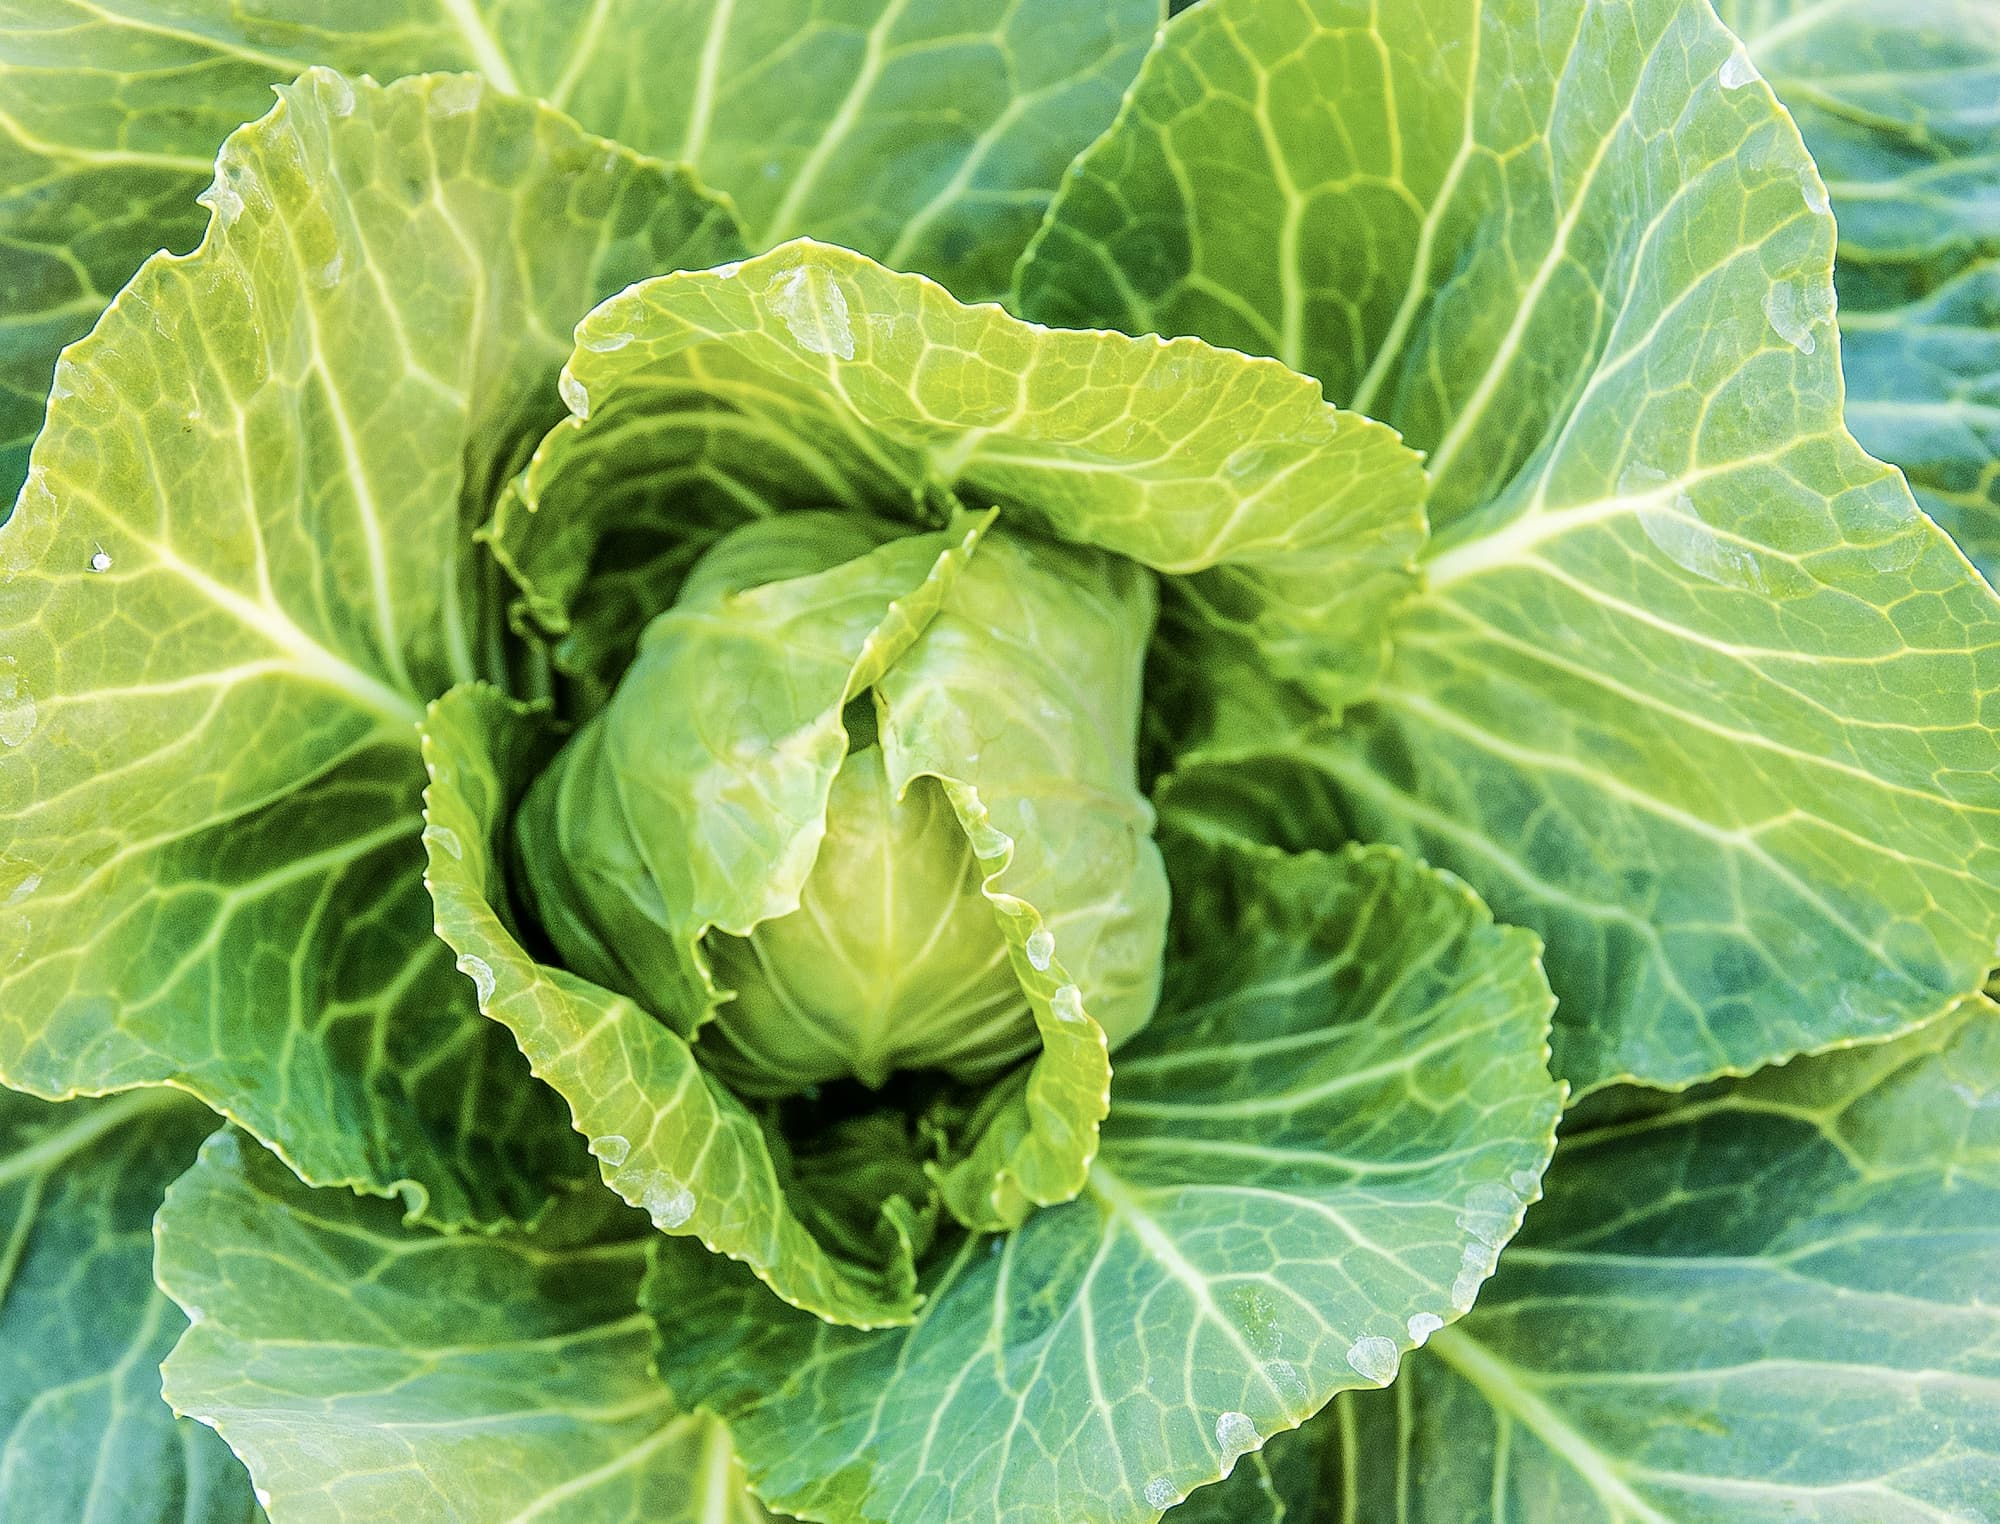 close up of head of lettuce